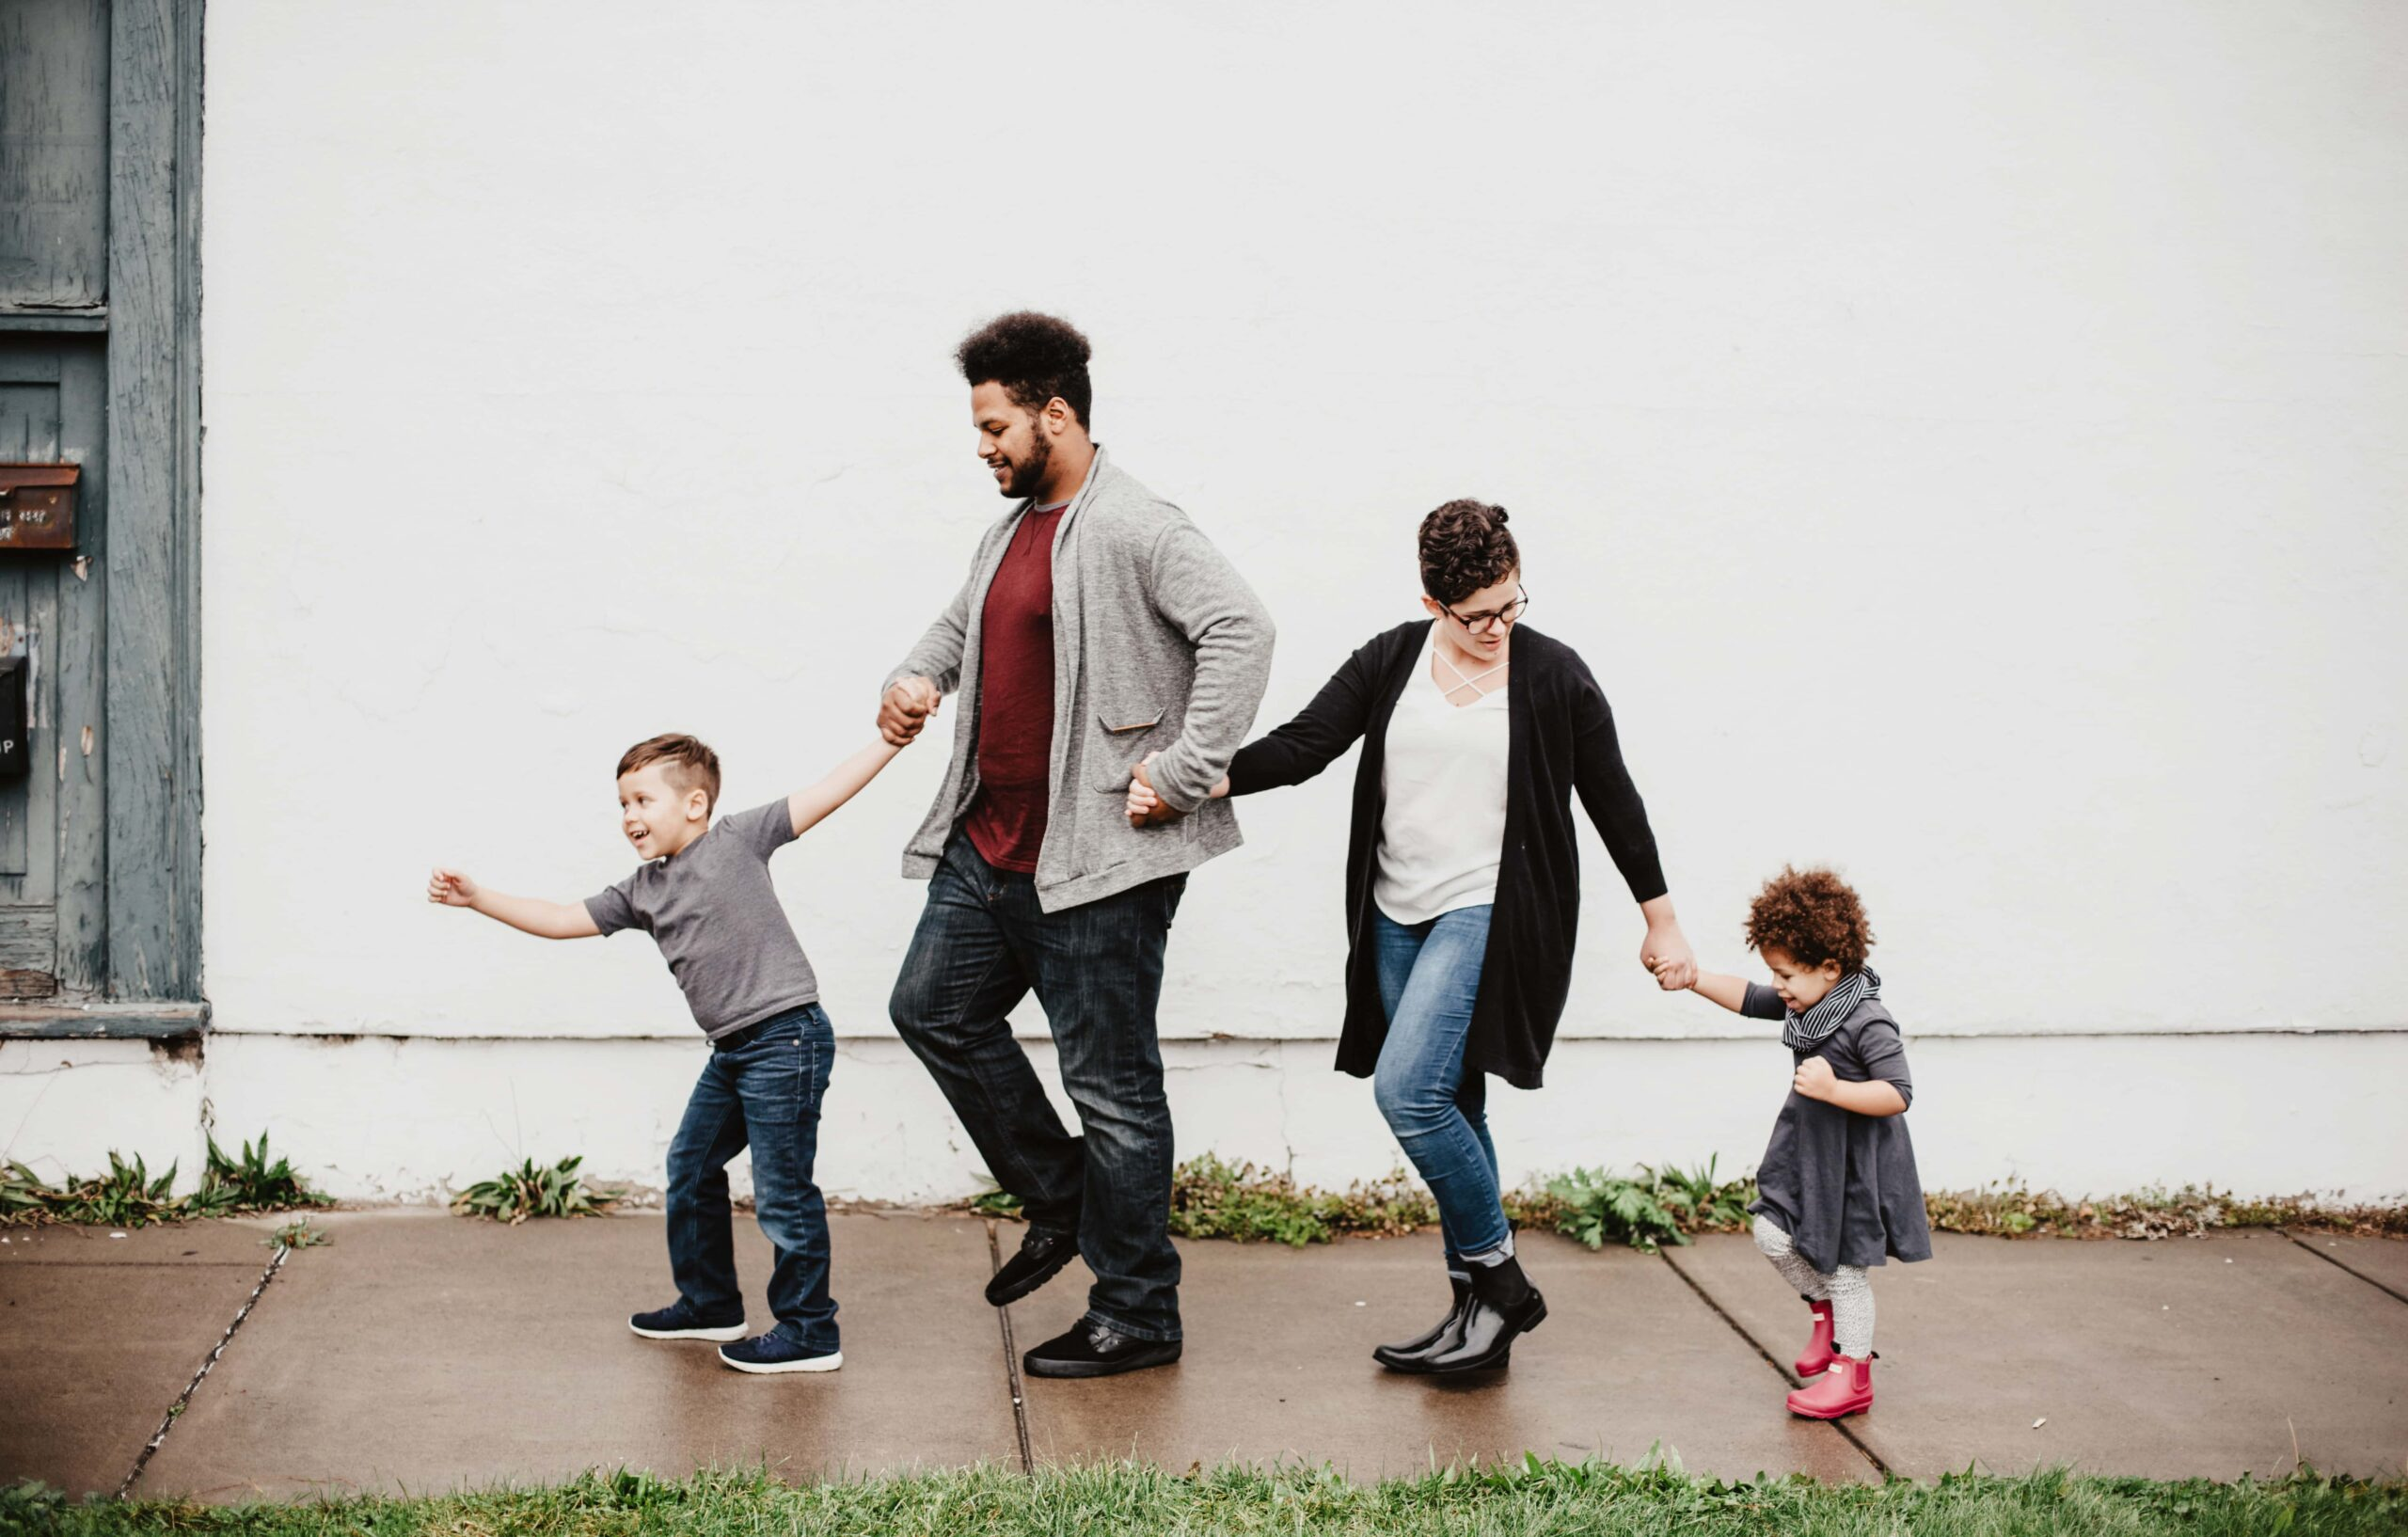 Two Foster parents take a walk with their newly adopted kids